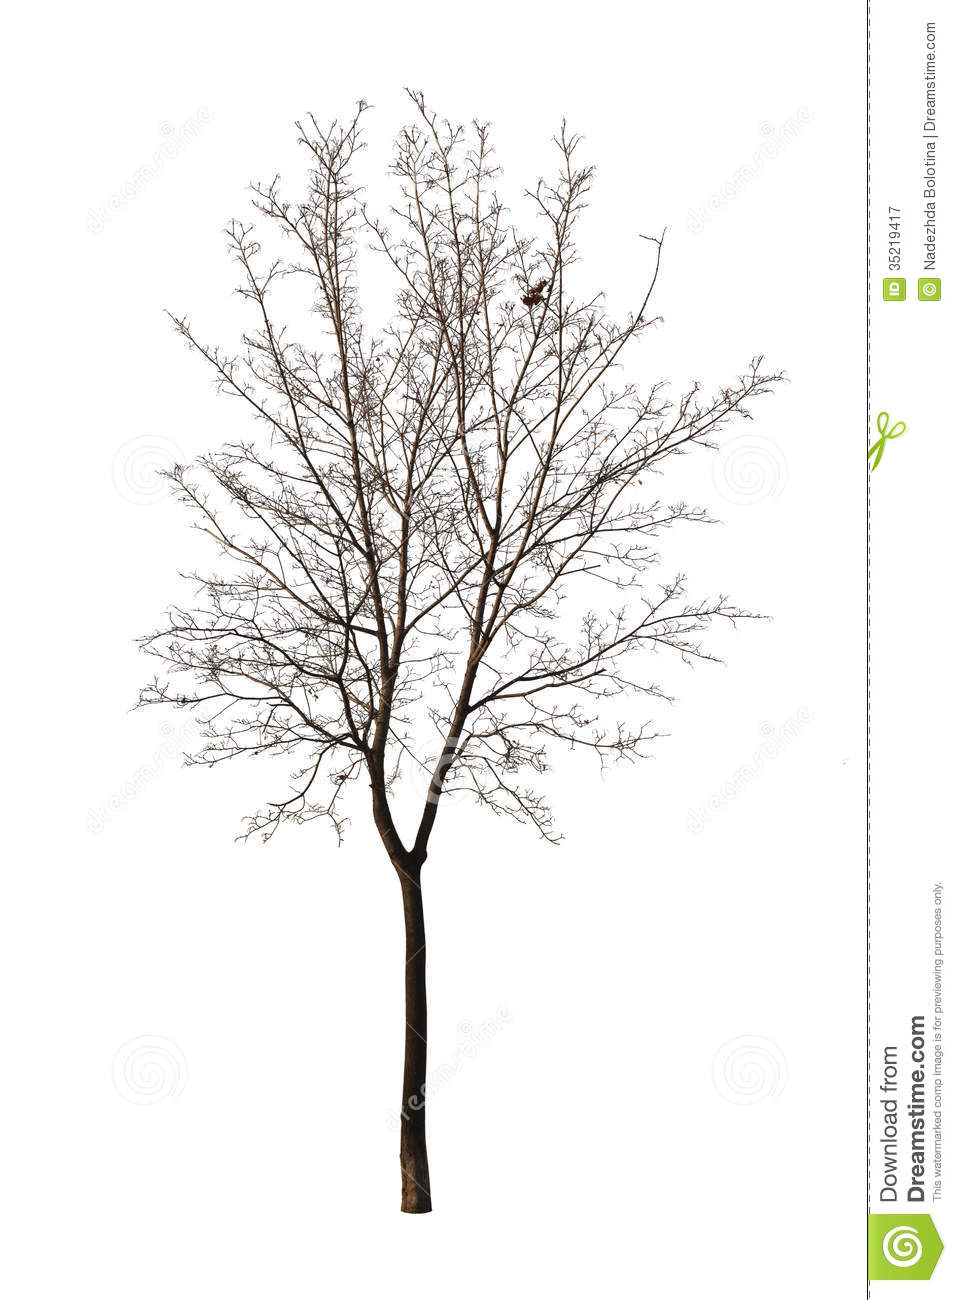 Bare Tree Isolated Over White Royalty Free Stock Photography Image 35219417